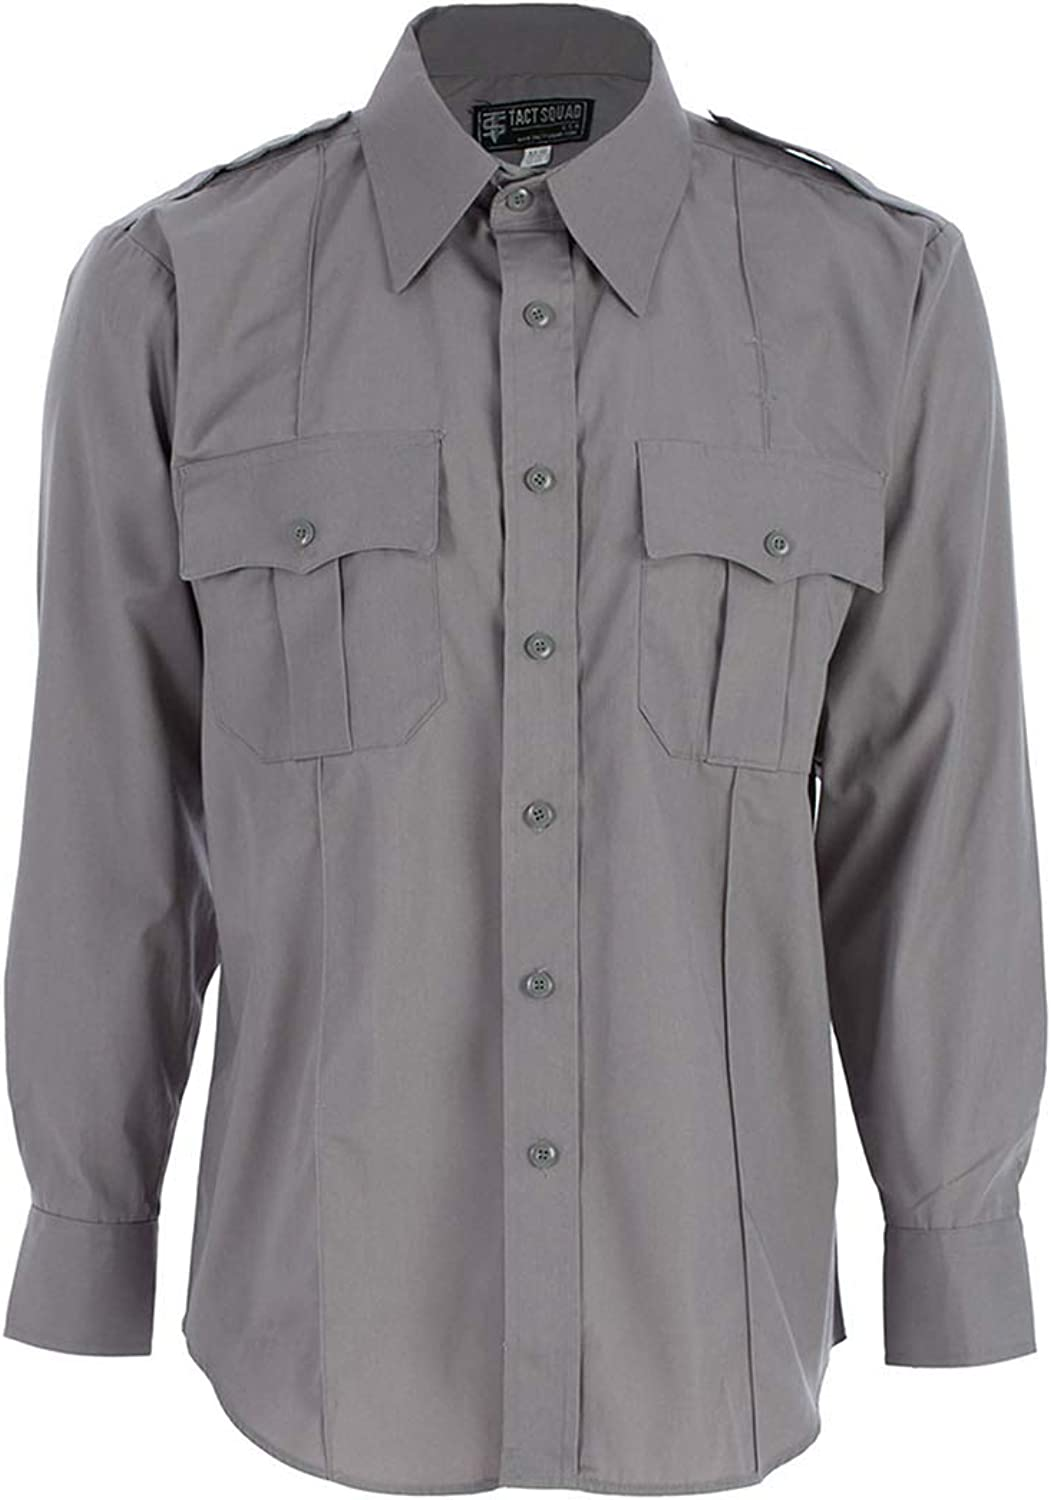 Tact New products, world's highest quality popular! Squad Men's Polyester Cotton Miami Mall Shirt Long Sleeve Nickel Gray